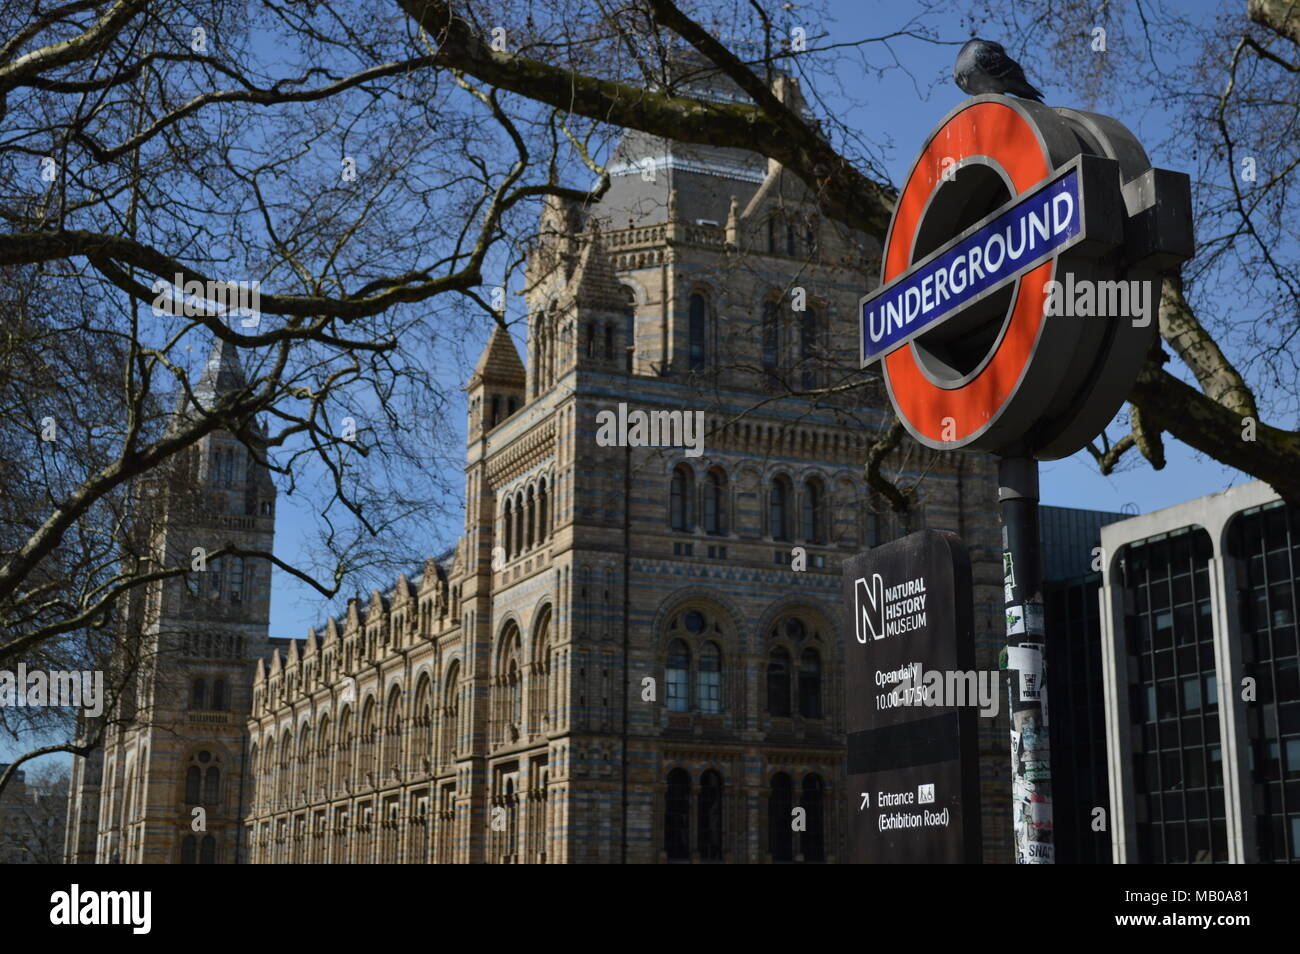 A view of the Natural History Museum in South Kensington, London - Stock Image